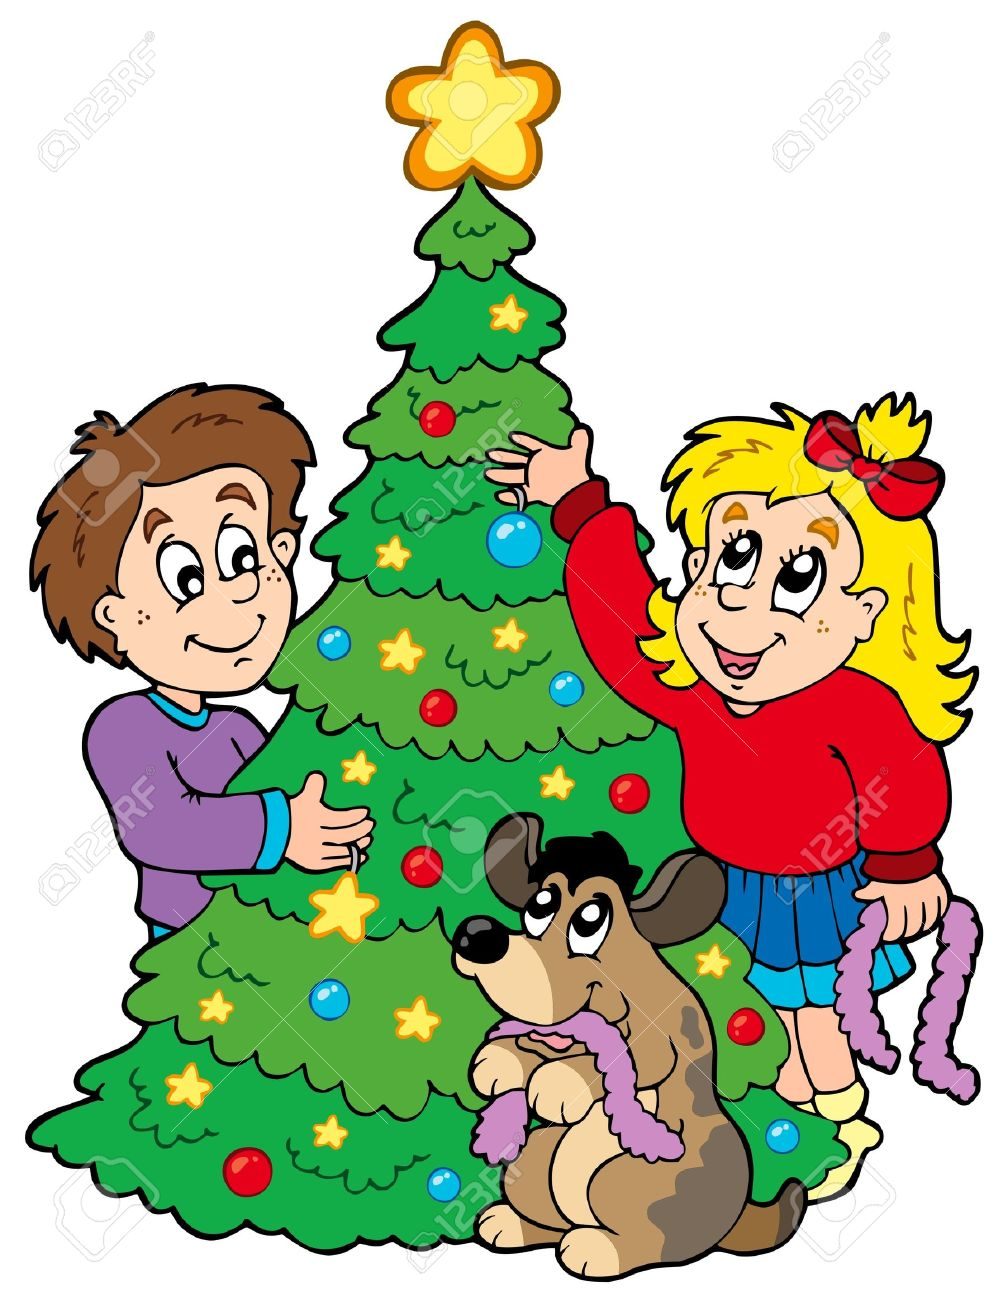 Christmas decorate the tree clipart.